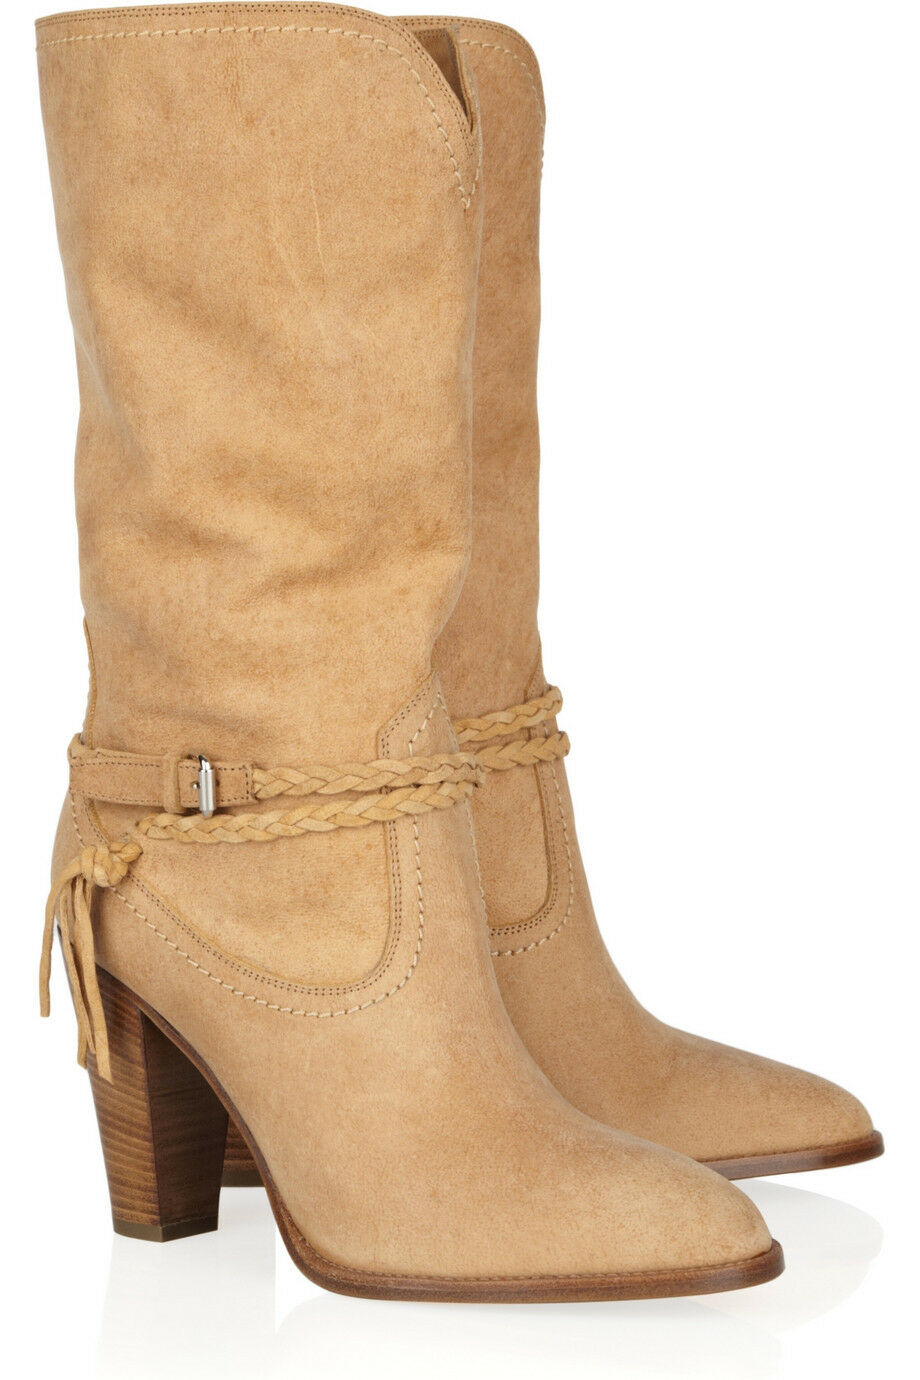 RALPH LAUREN COLLECTION NAVAJO NALA CAMEL MIDCALF LEATHER NAVAJO COLLECTION BOOTS 8.5 6 f137fc